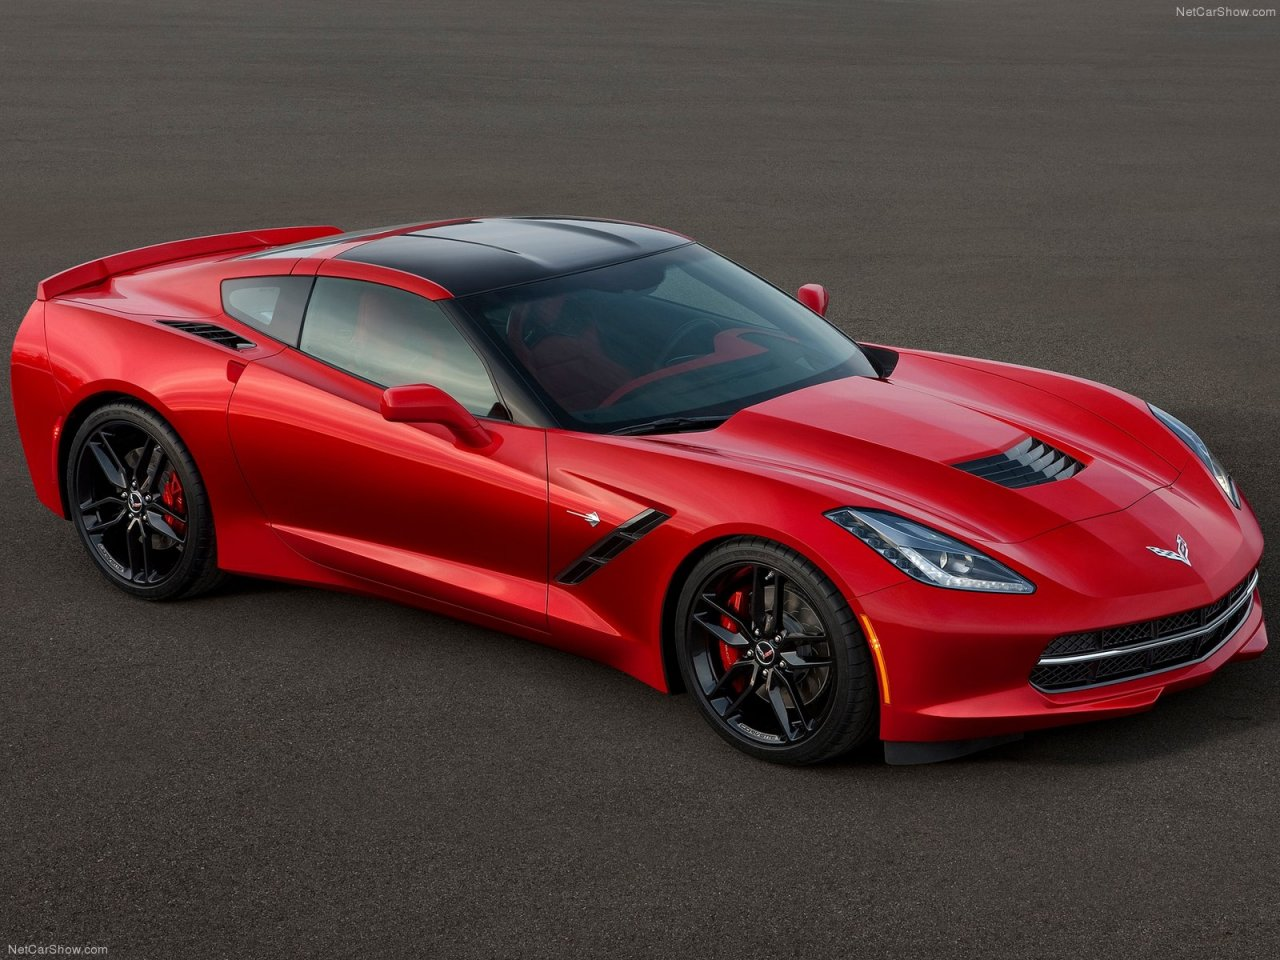 Chevrolet Corvette Stingray C7 Laptimes Specs Performance